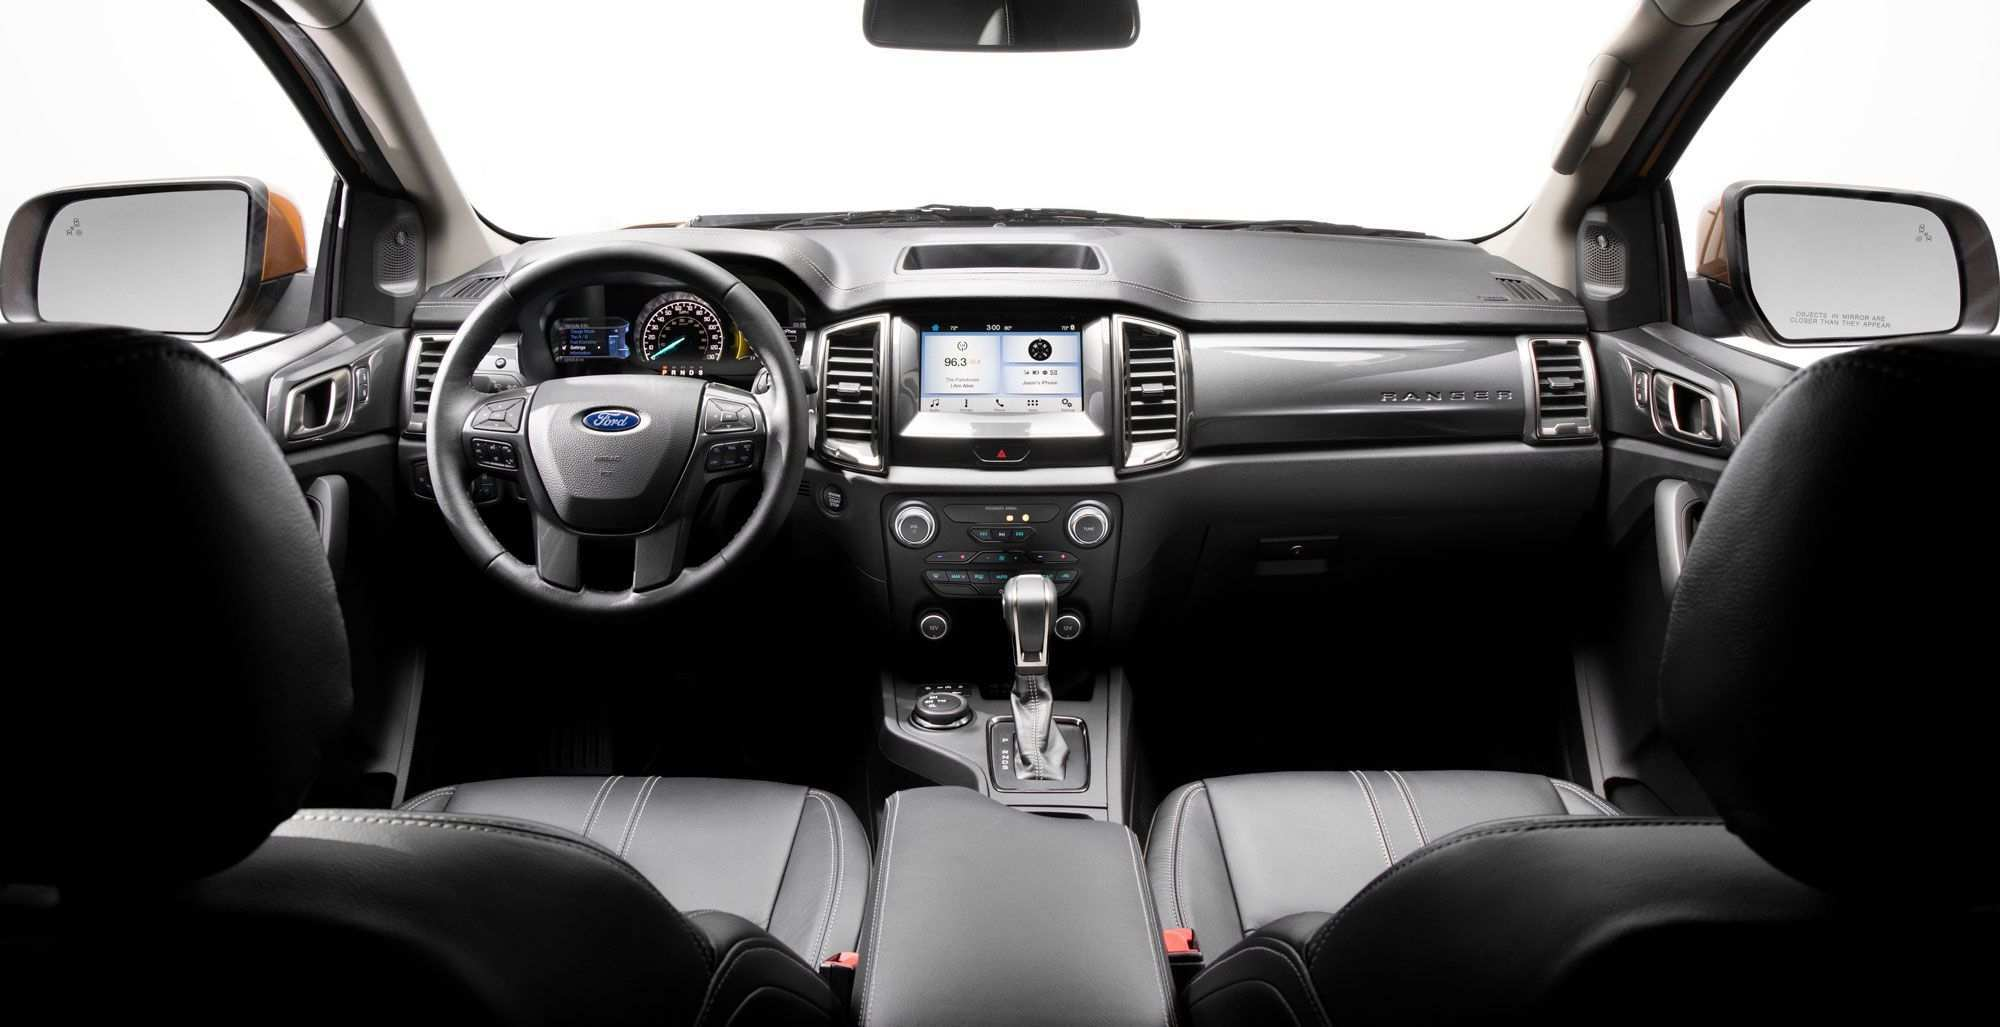 28 Best Review Ford 2019 Interior Picture Release Date And Review Pricing for Ford 2019 Interior Picture Release Date And Review